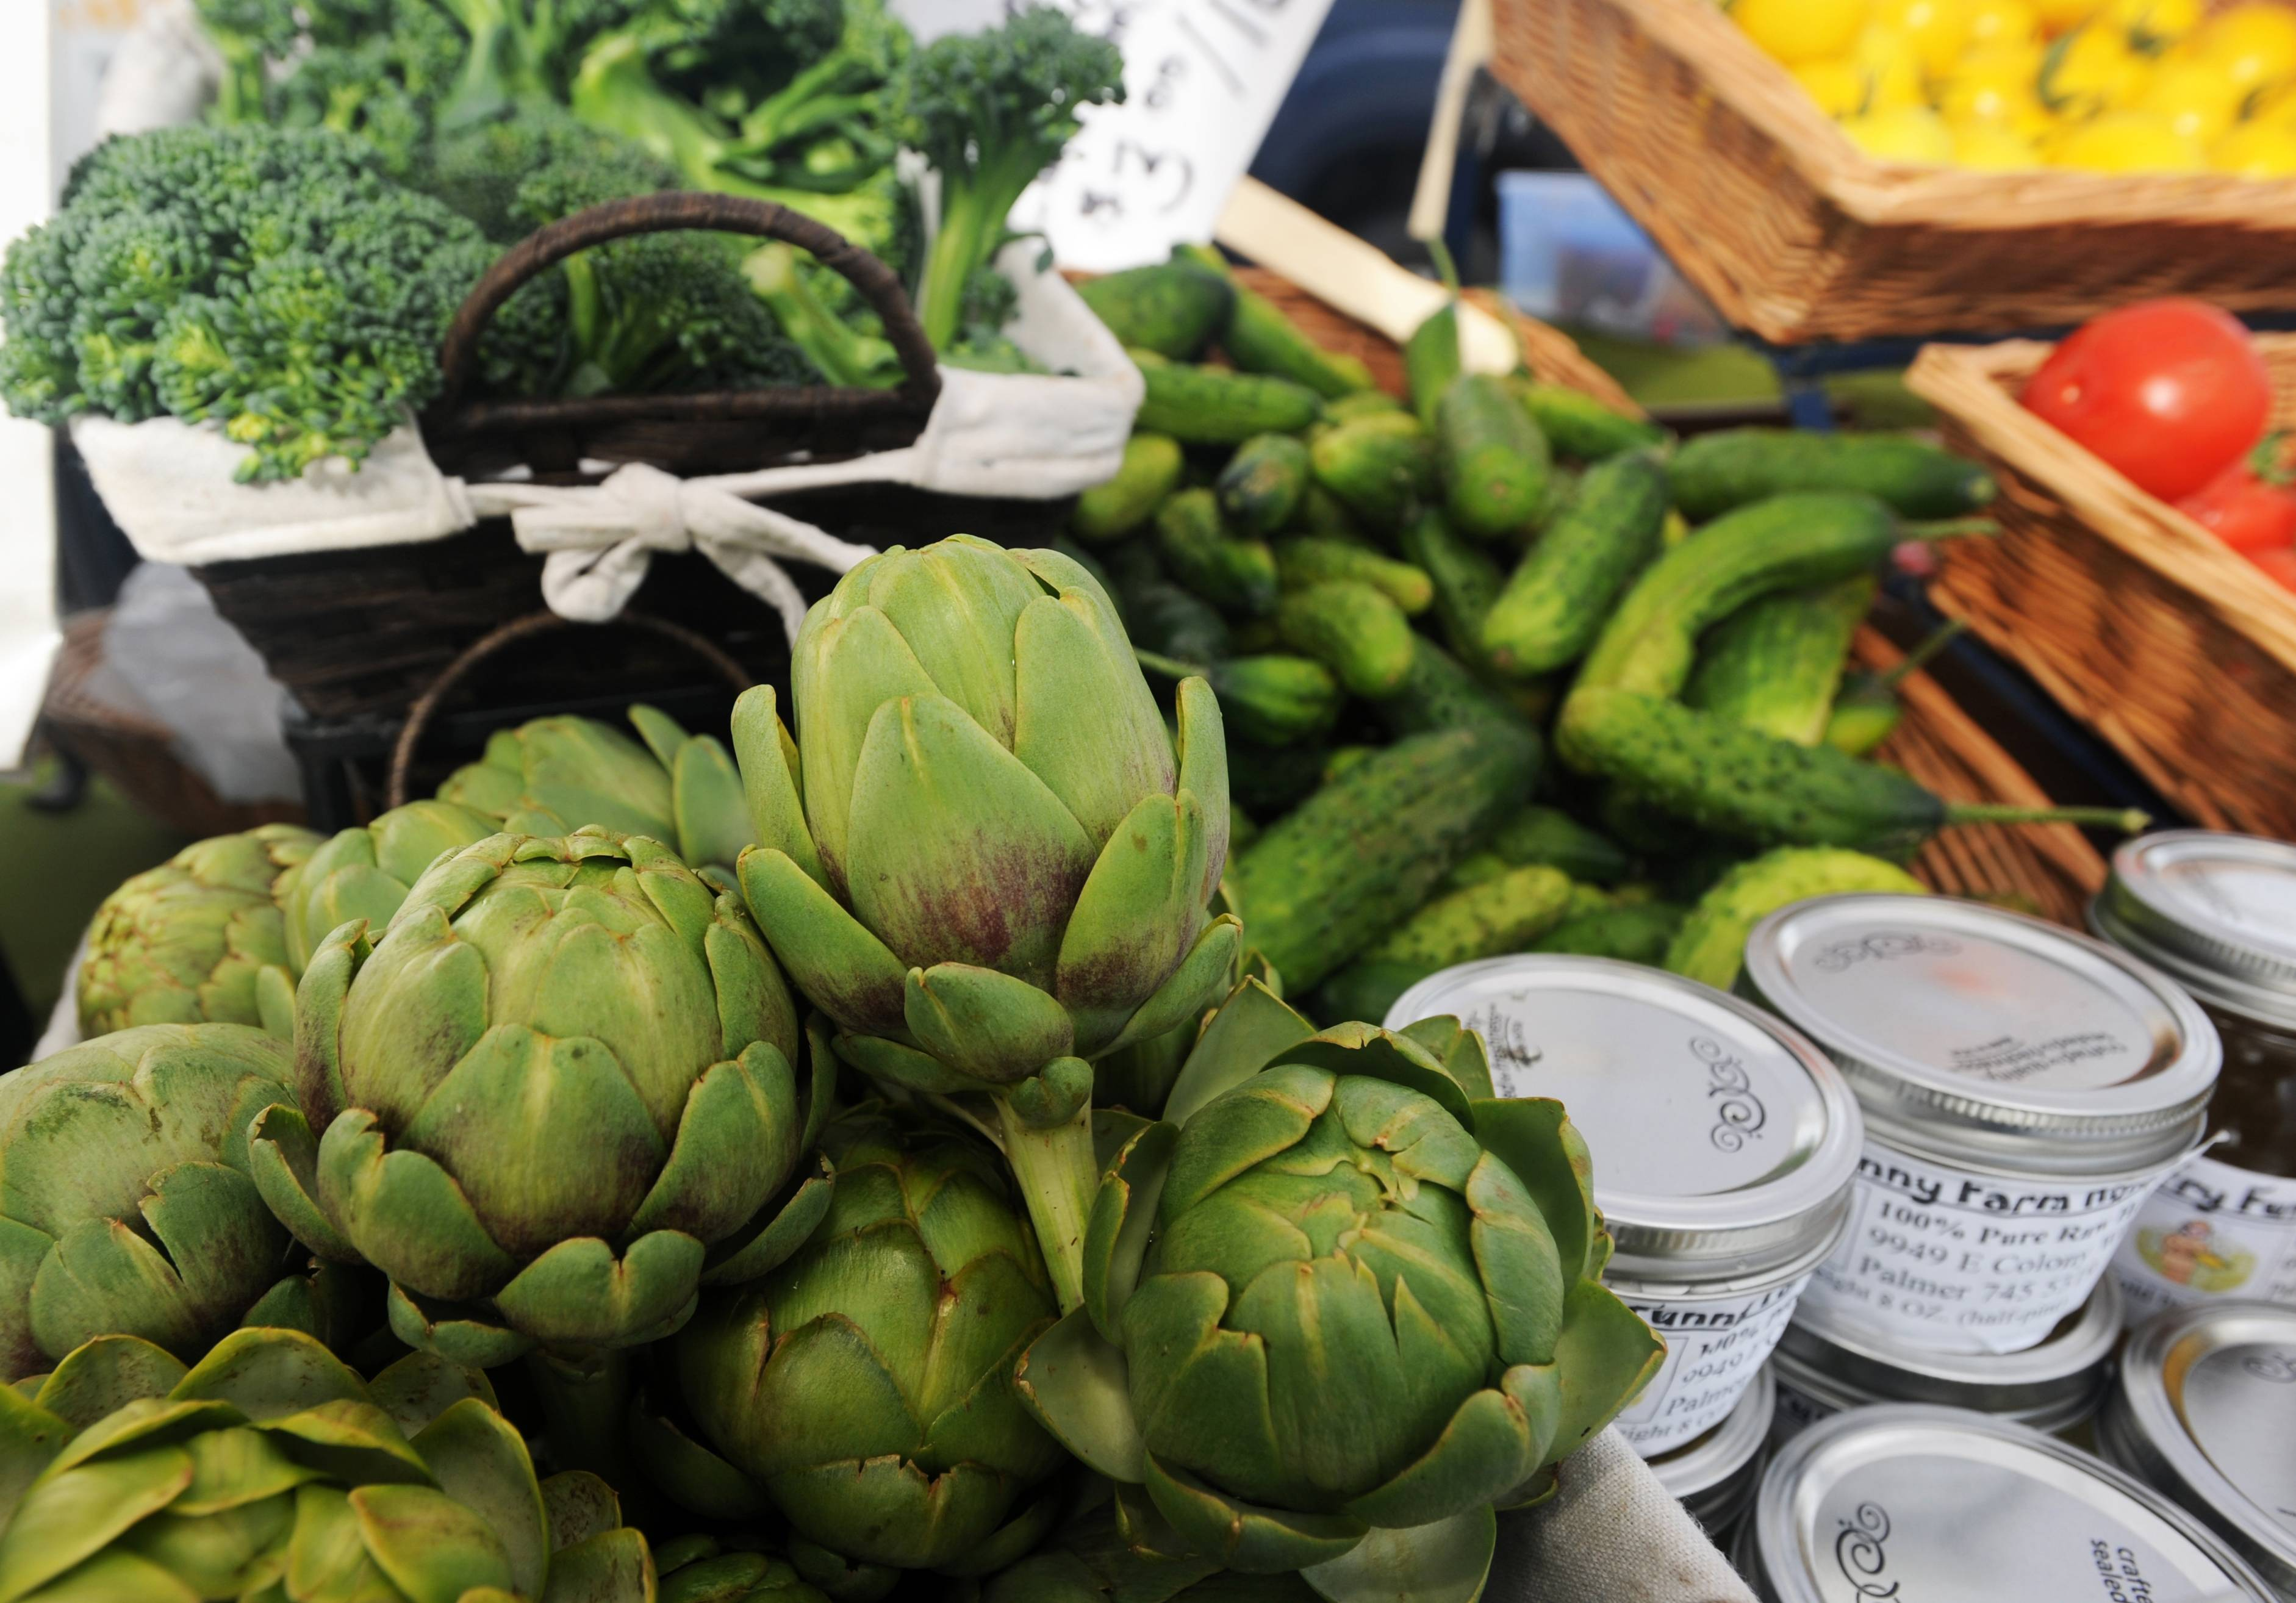 Artichokes and other vegetables are for sale at the Kenley's Alaskan Vegetables and Flowers stand at the South Anchorage Farmers Market in Anchorage, Alaska. Billed as Alaska's largest open air market, it's a must-stop for tourists in town on Saturdays and Sundays.